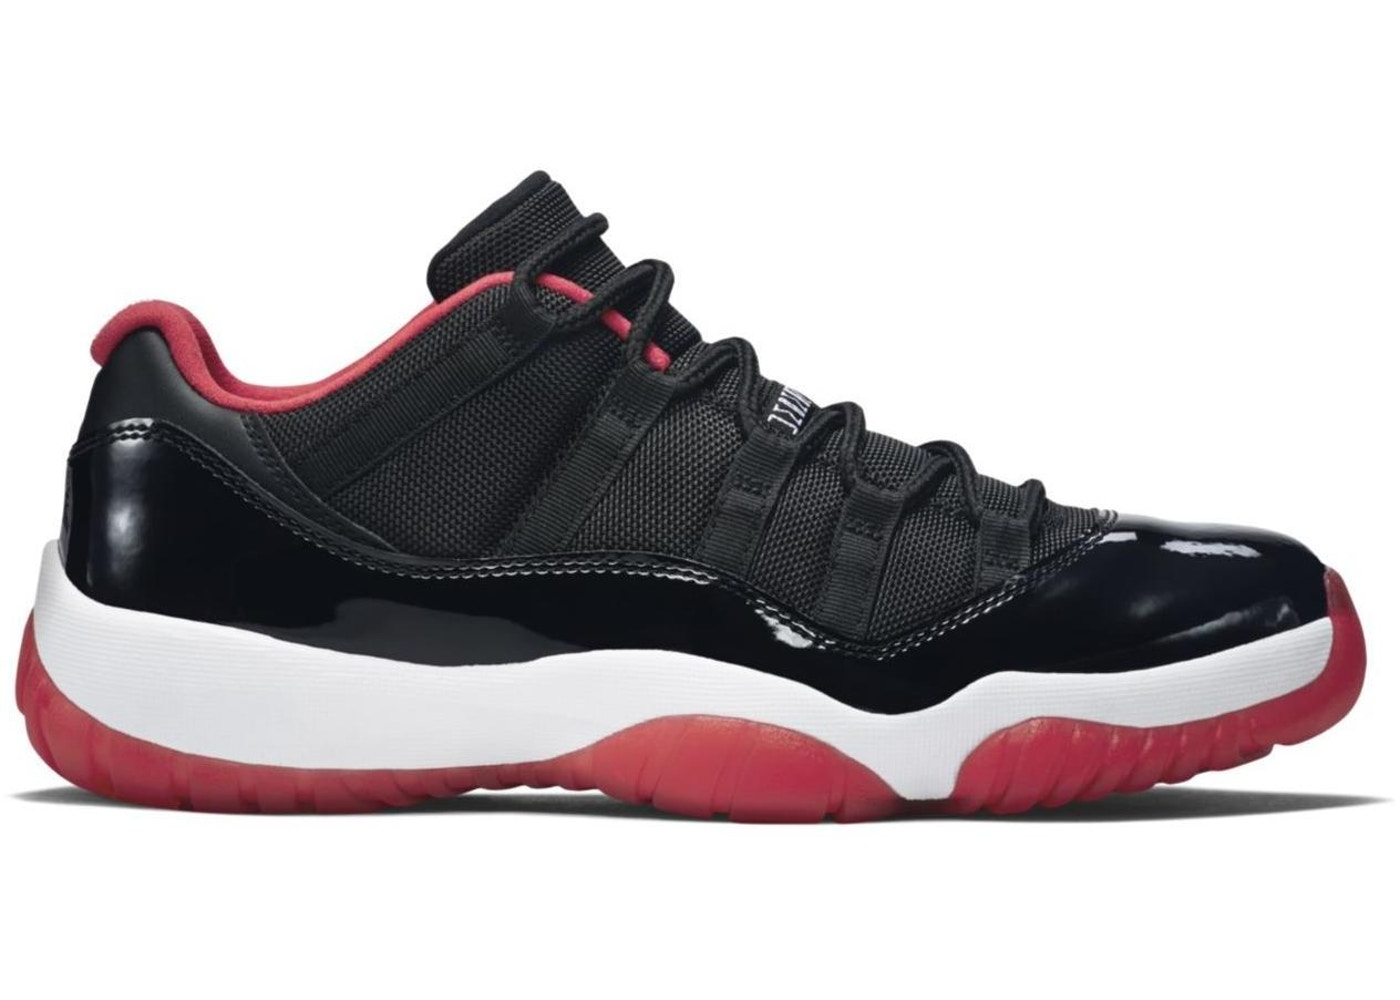 Jordan 11 Retro Low Bred - 528895-012 5bf6a5058e44